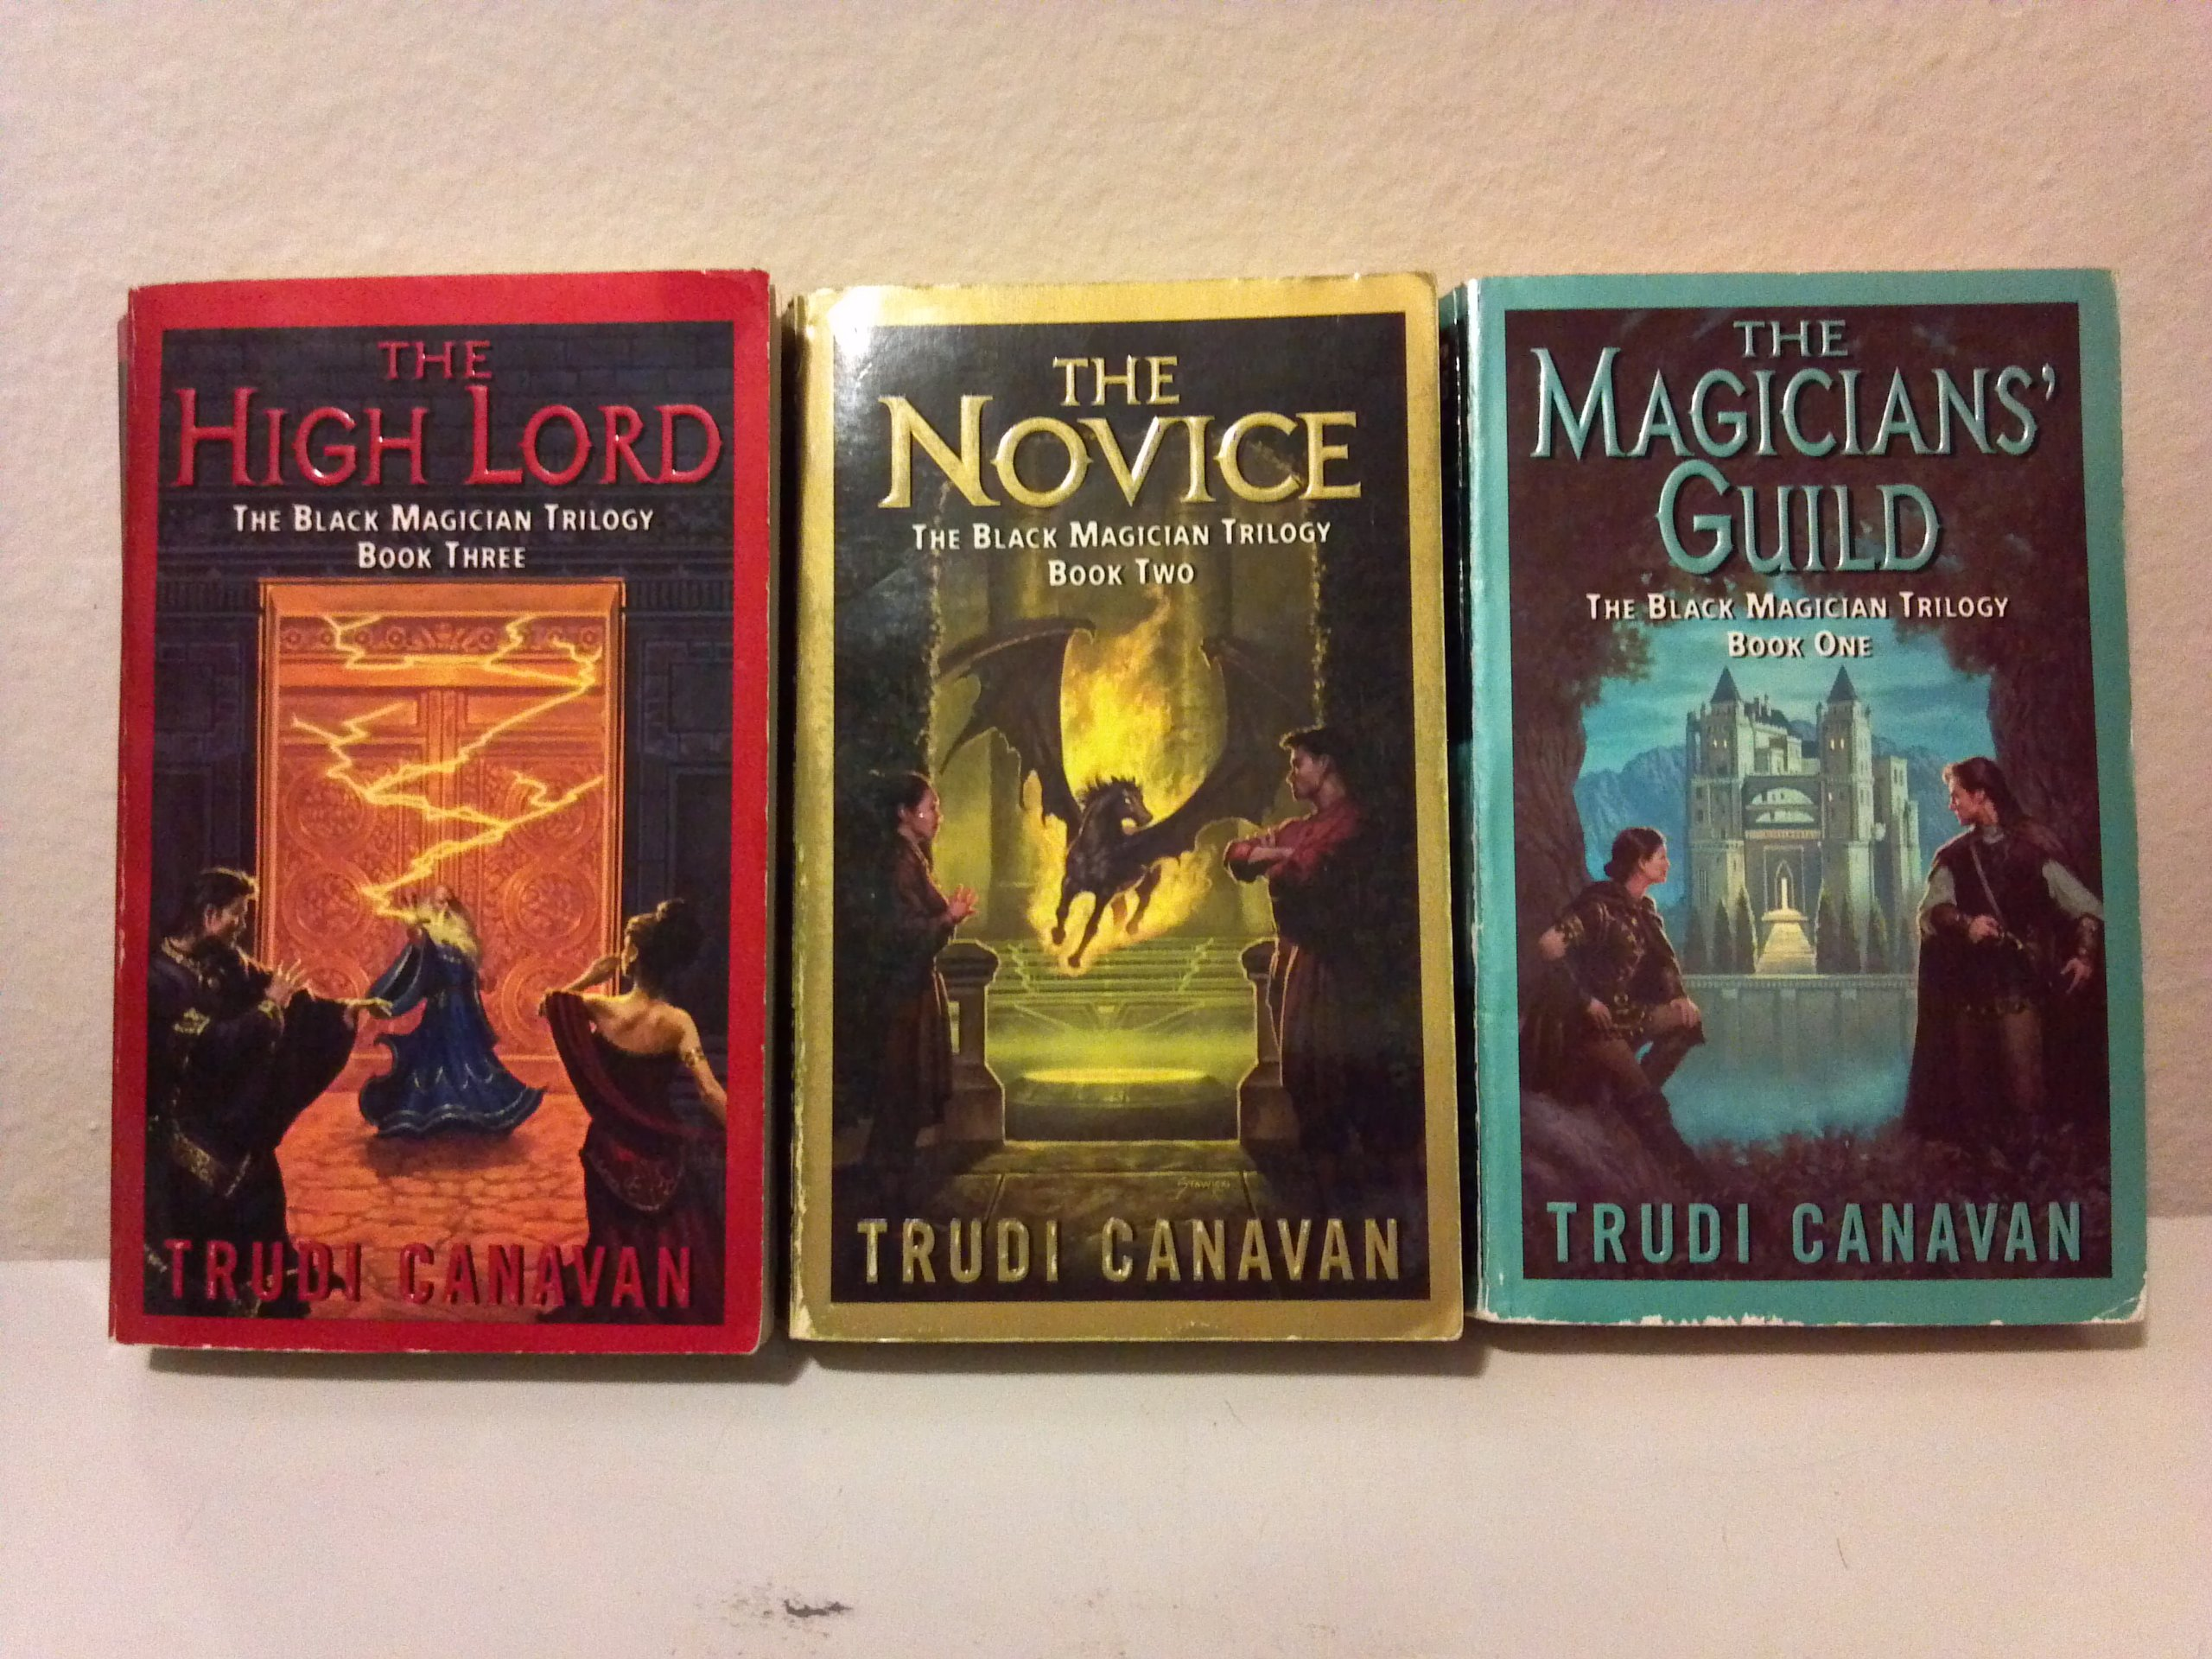 Magician free black the ebook download trilogy